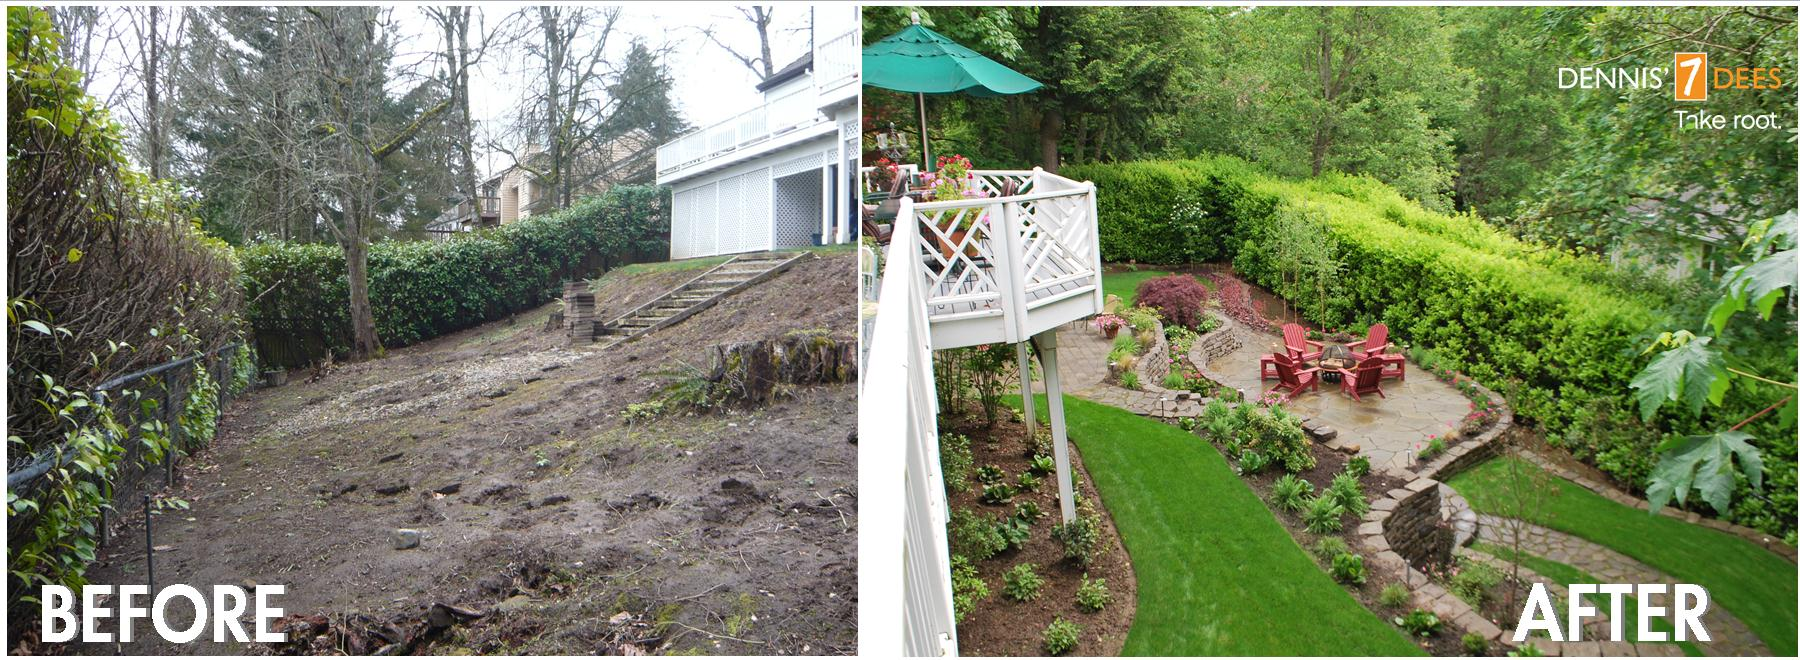 Featured landscape projects take root with dennis 39 7 dees for Garden design ideas before and after